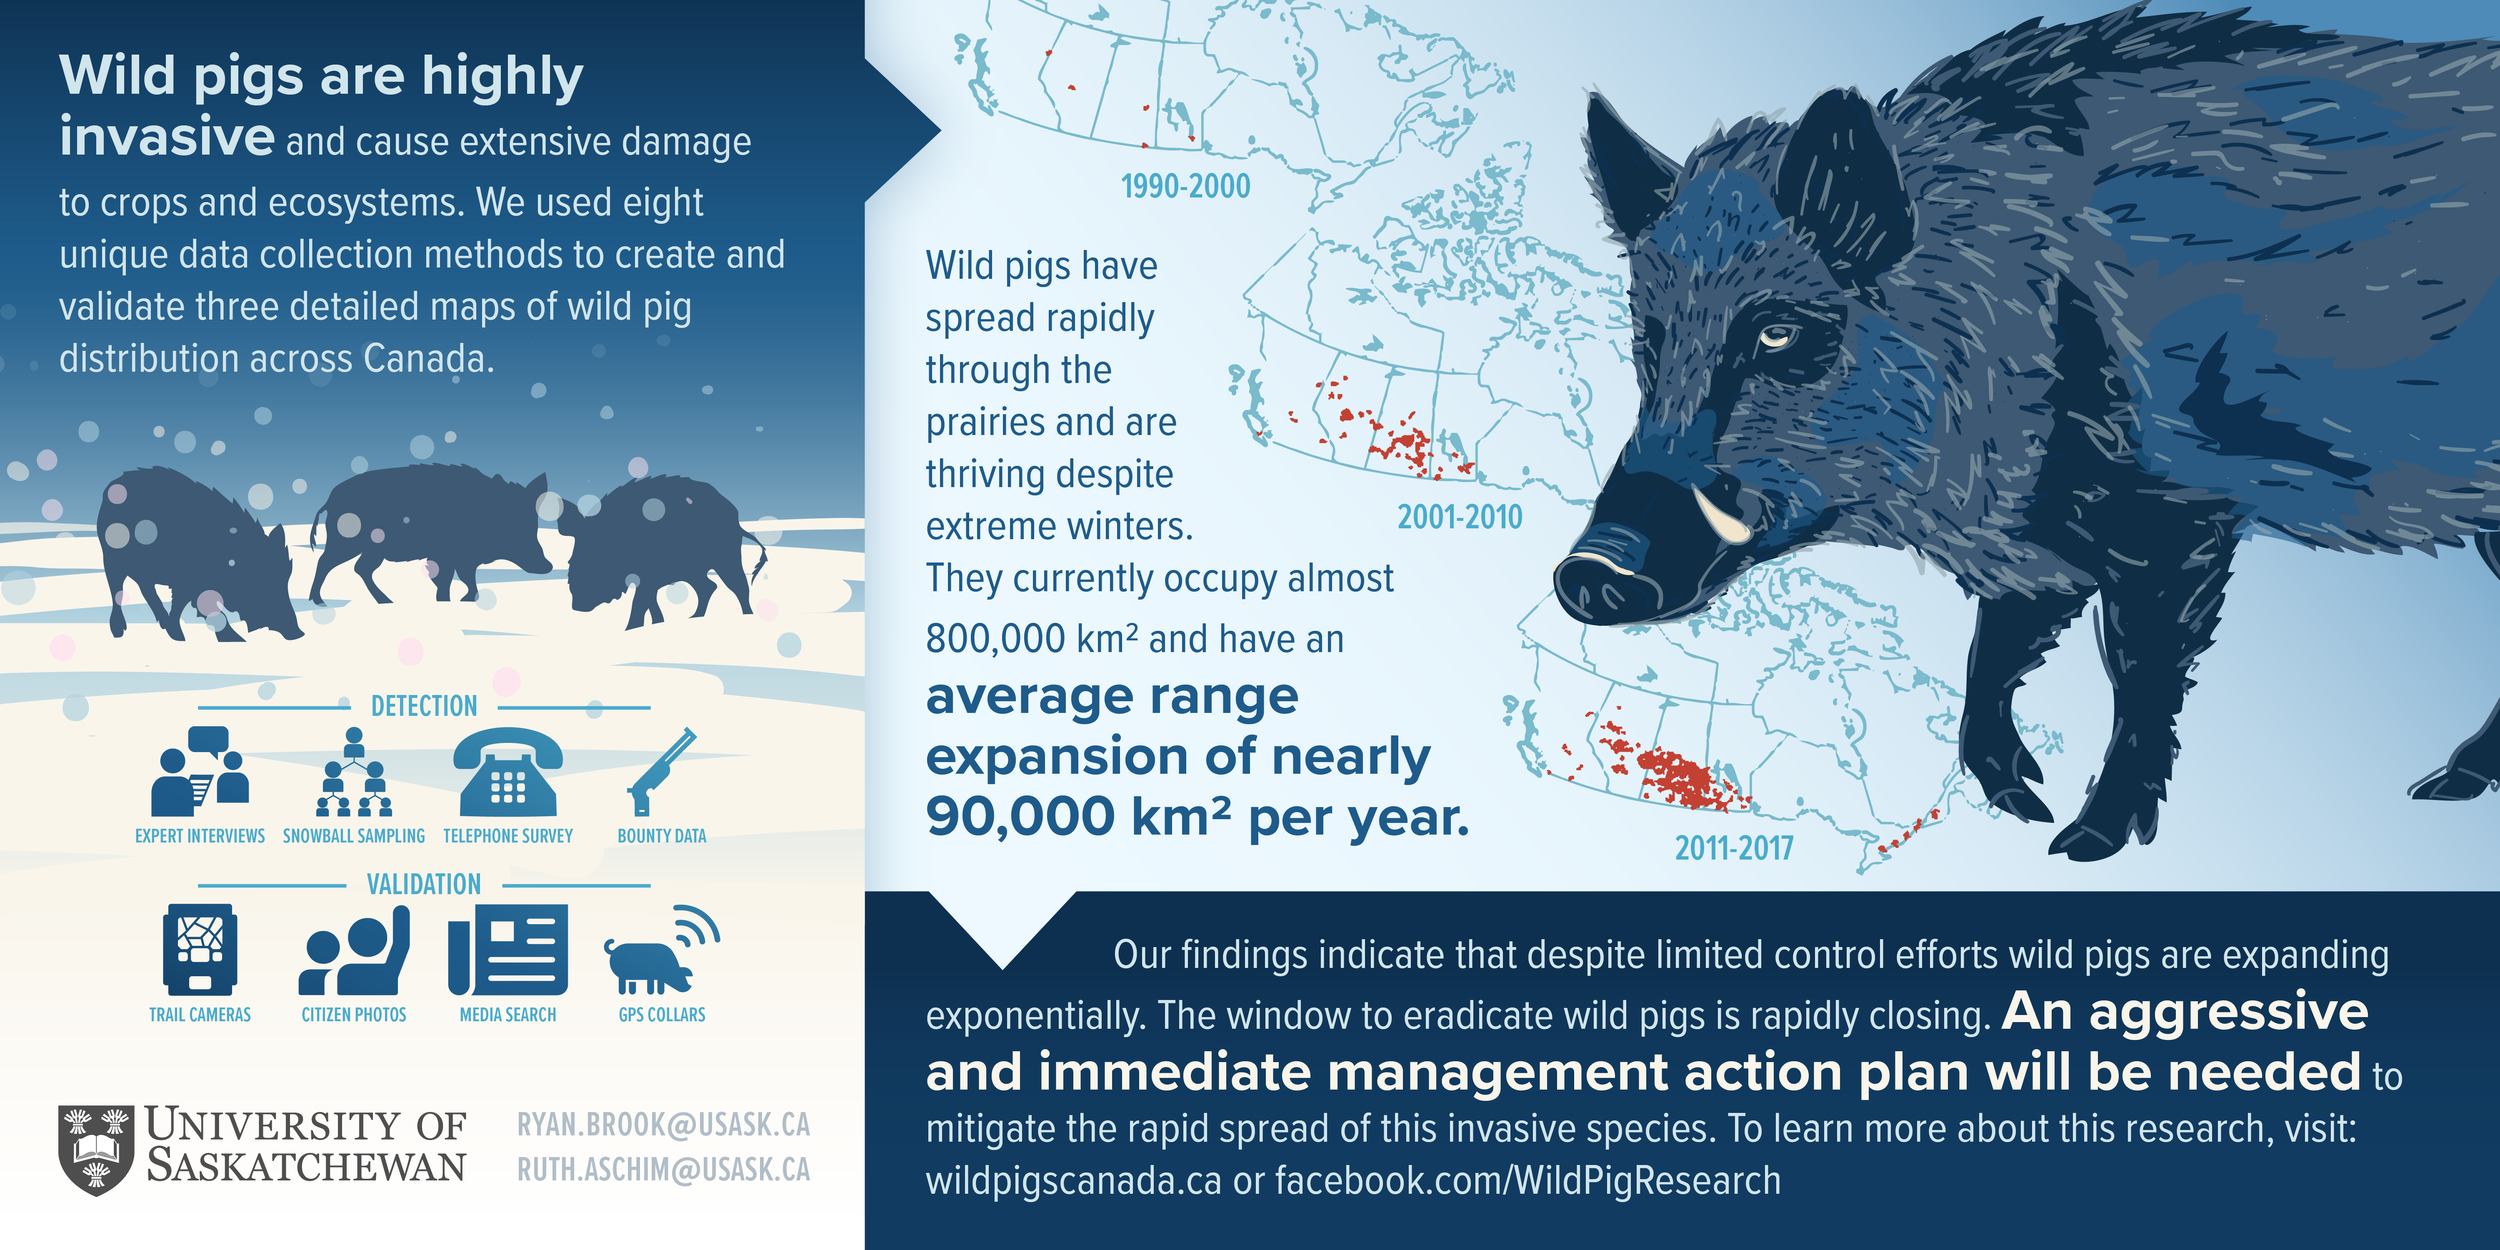 Brook_WildPigs_Infographic_V03_04.png